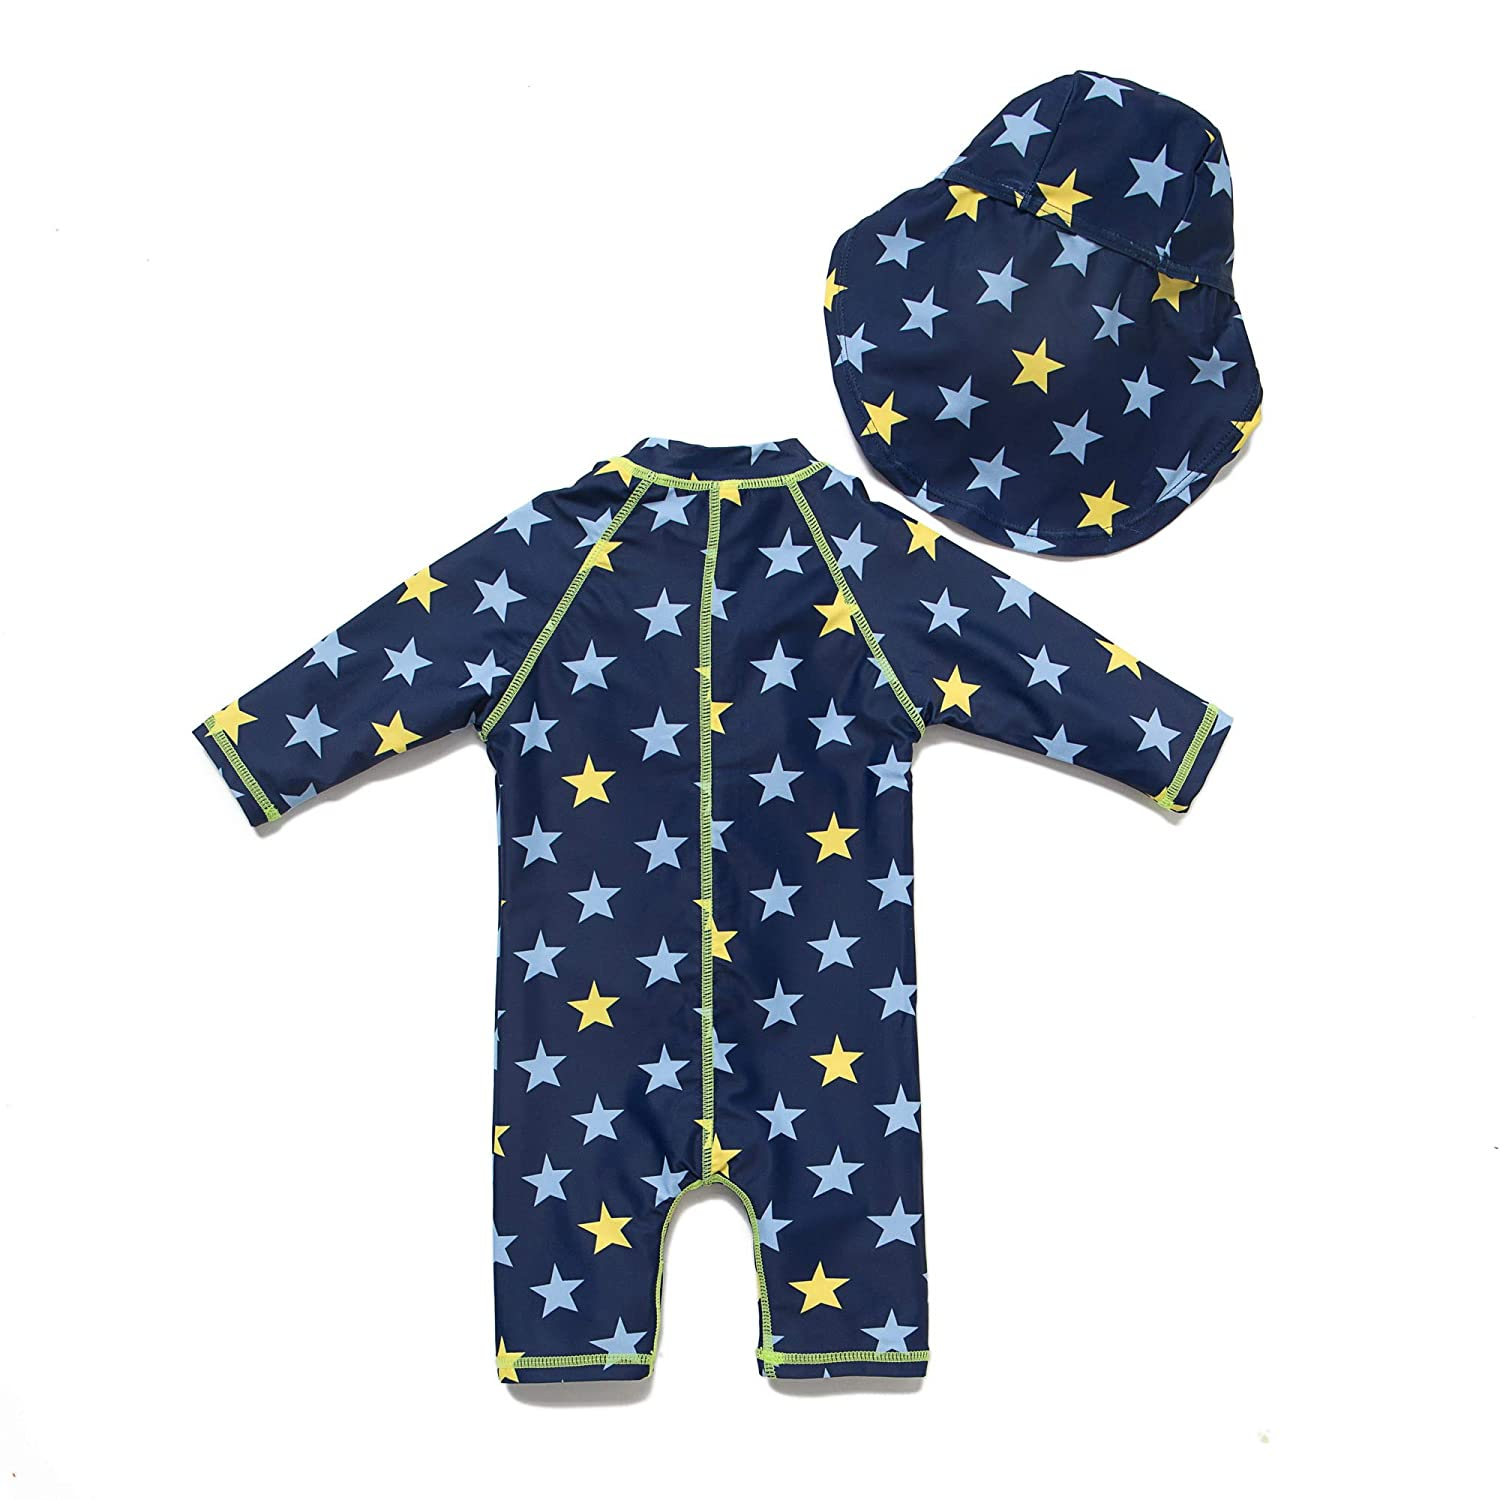 Baby Boys Sunsuit UPF 50 Navy,6-9Months Sun Protection All in One with Zipper Swimwear with Sun Hat